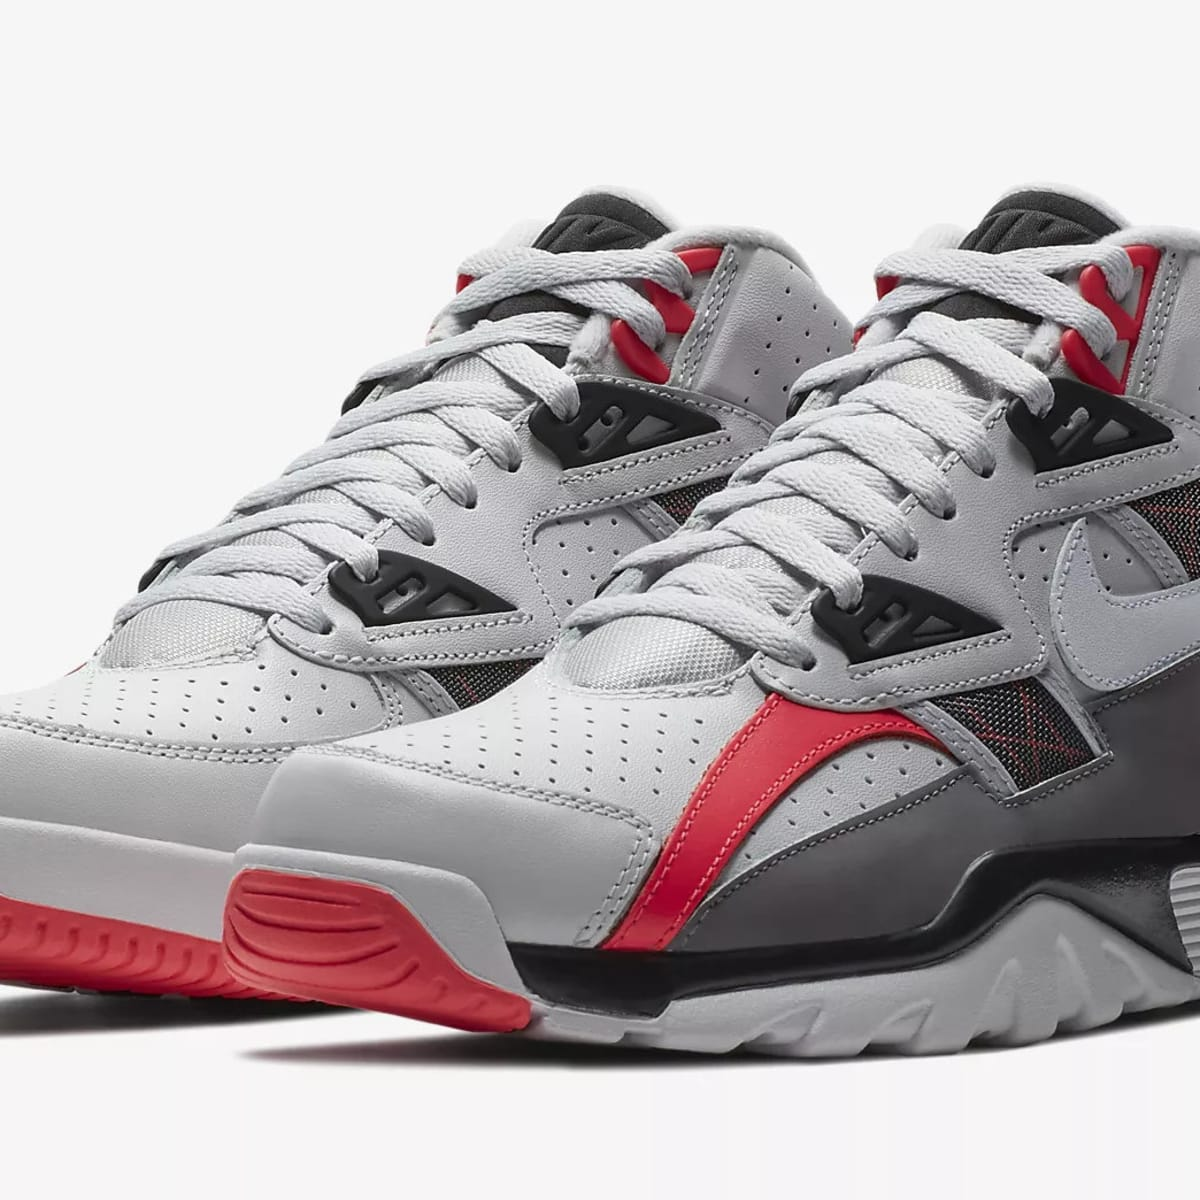 The Nike Air Trainer SC High Is Back in